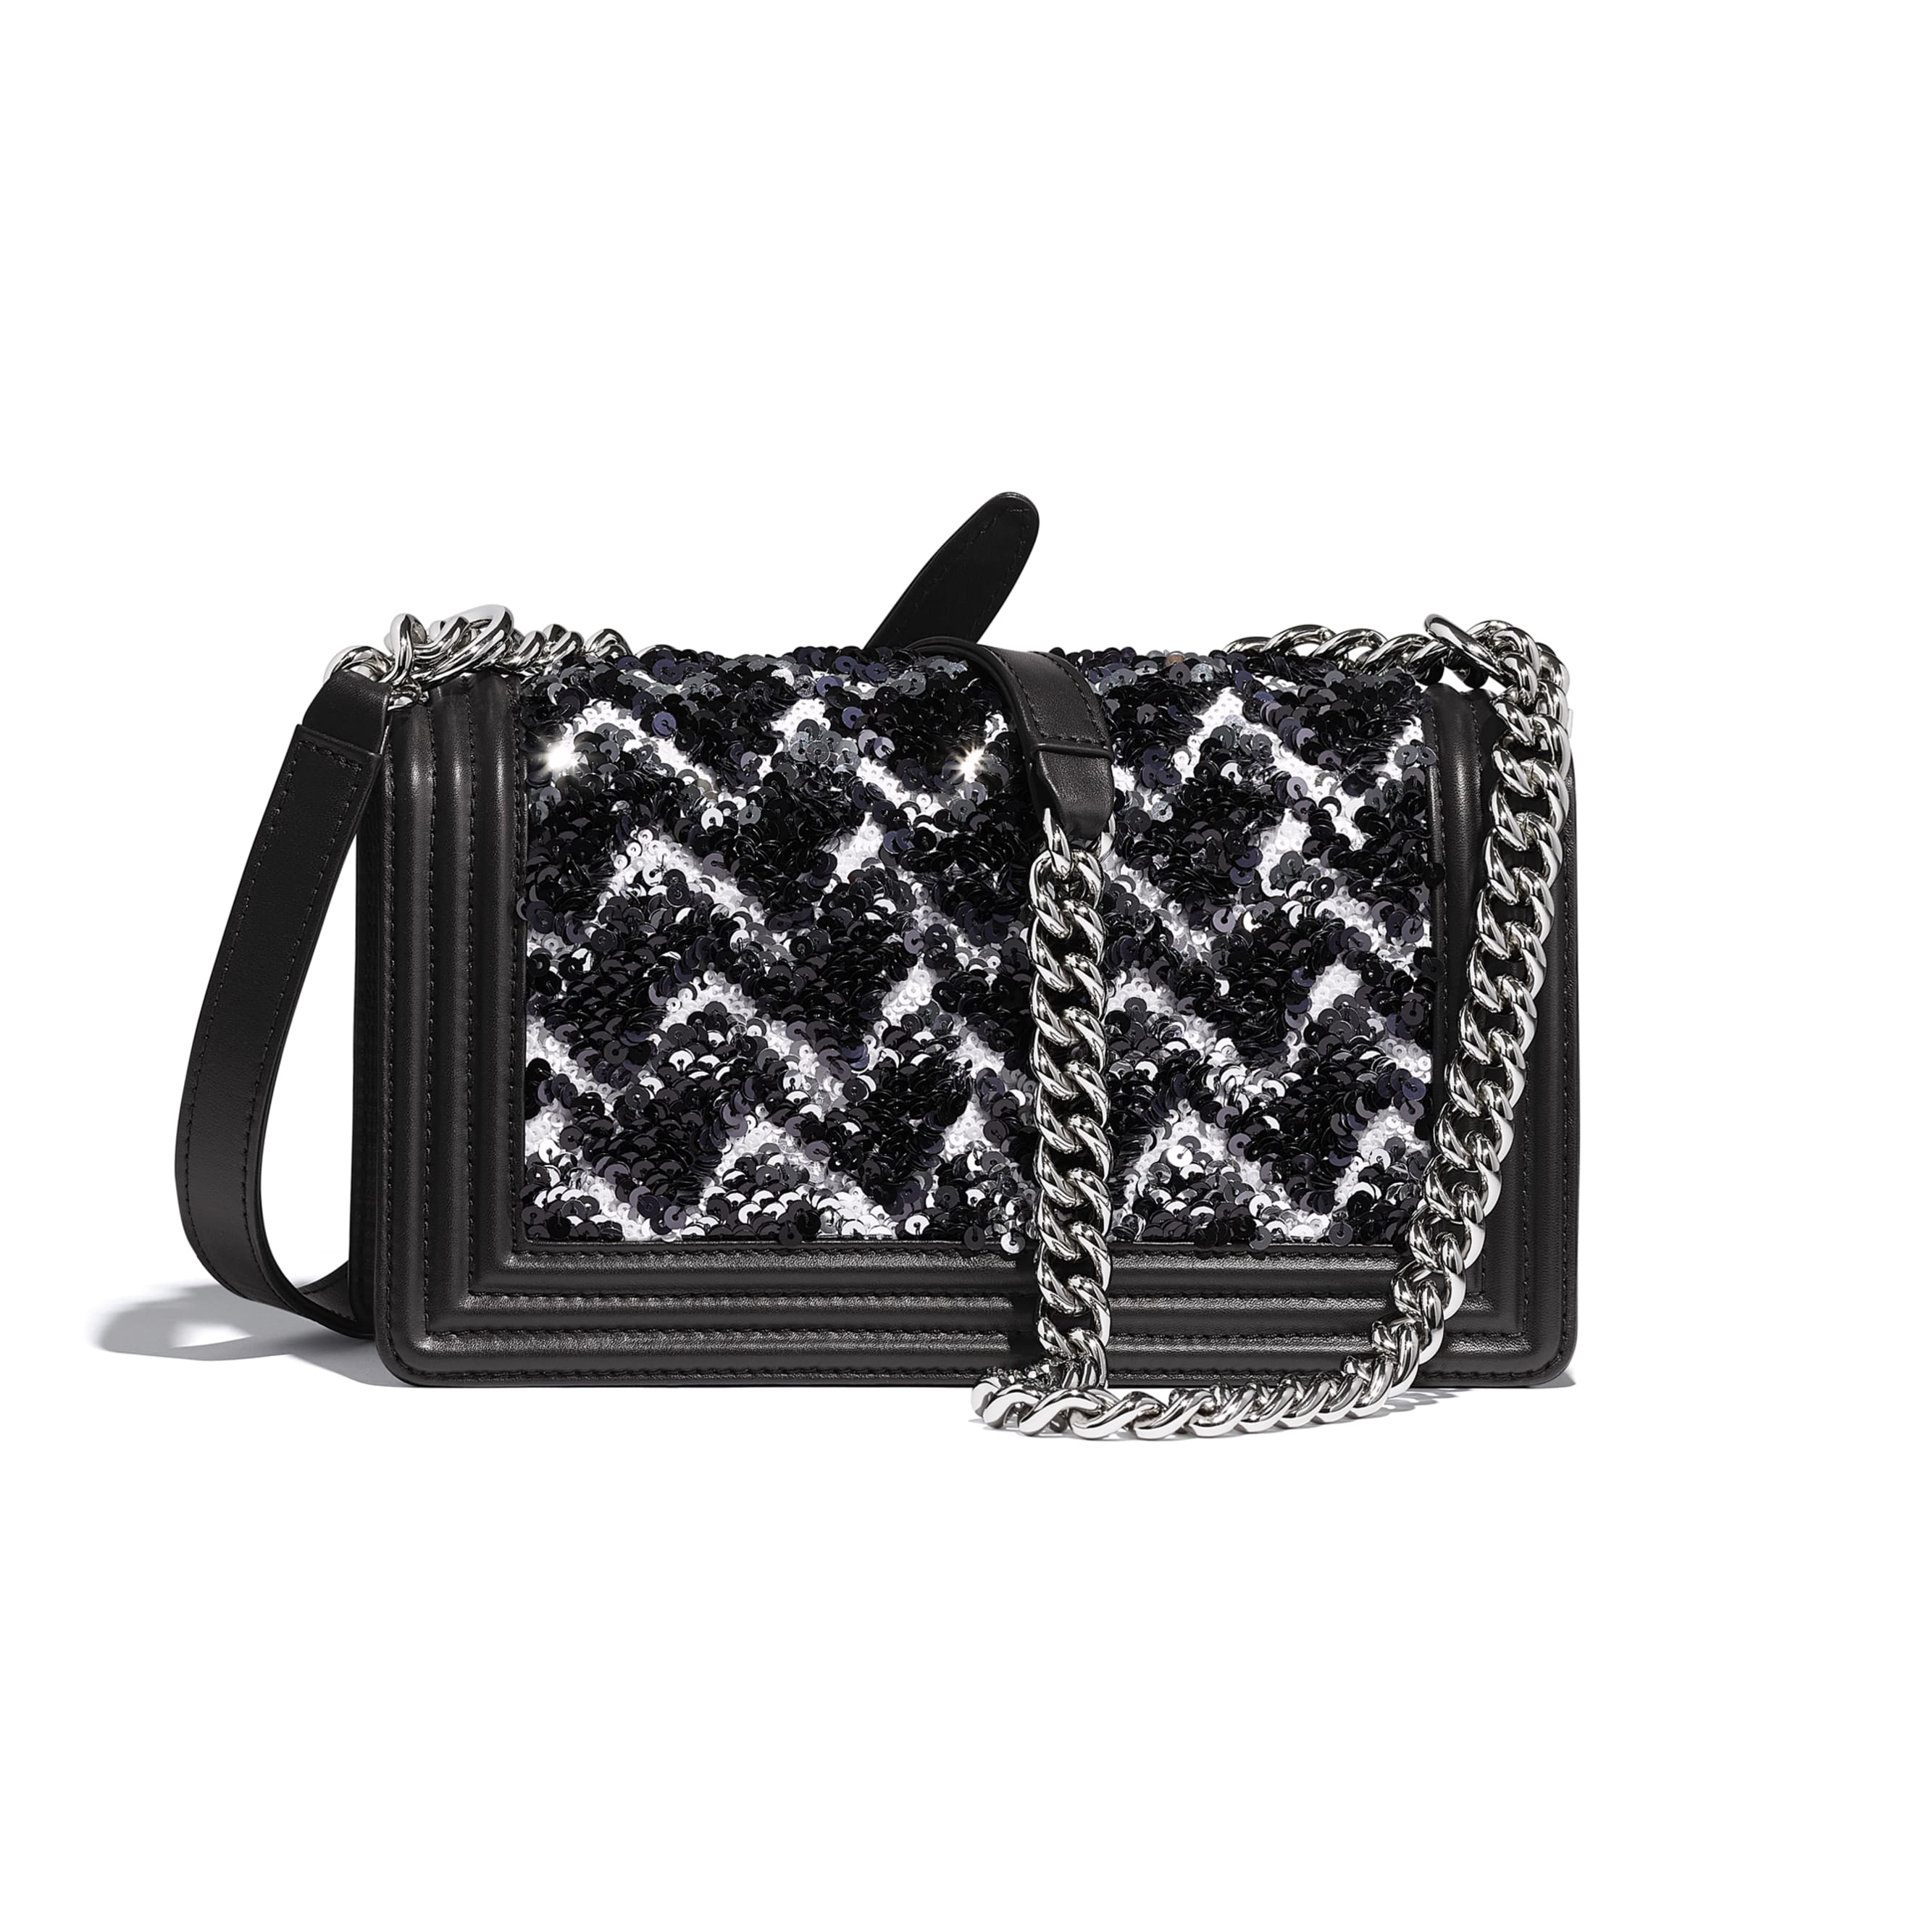 BOY CHANEL Handbag - Black, Silver & White - Sequins, Calfskin & Silver-Tone Metal - Alternative view - see standard sized version